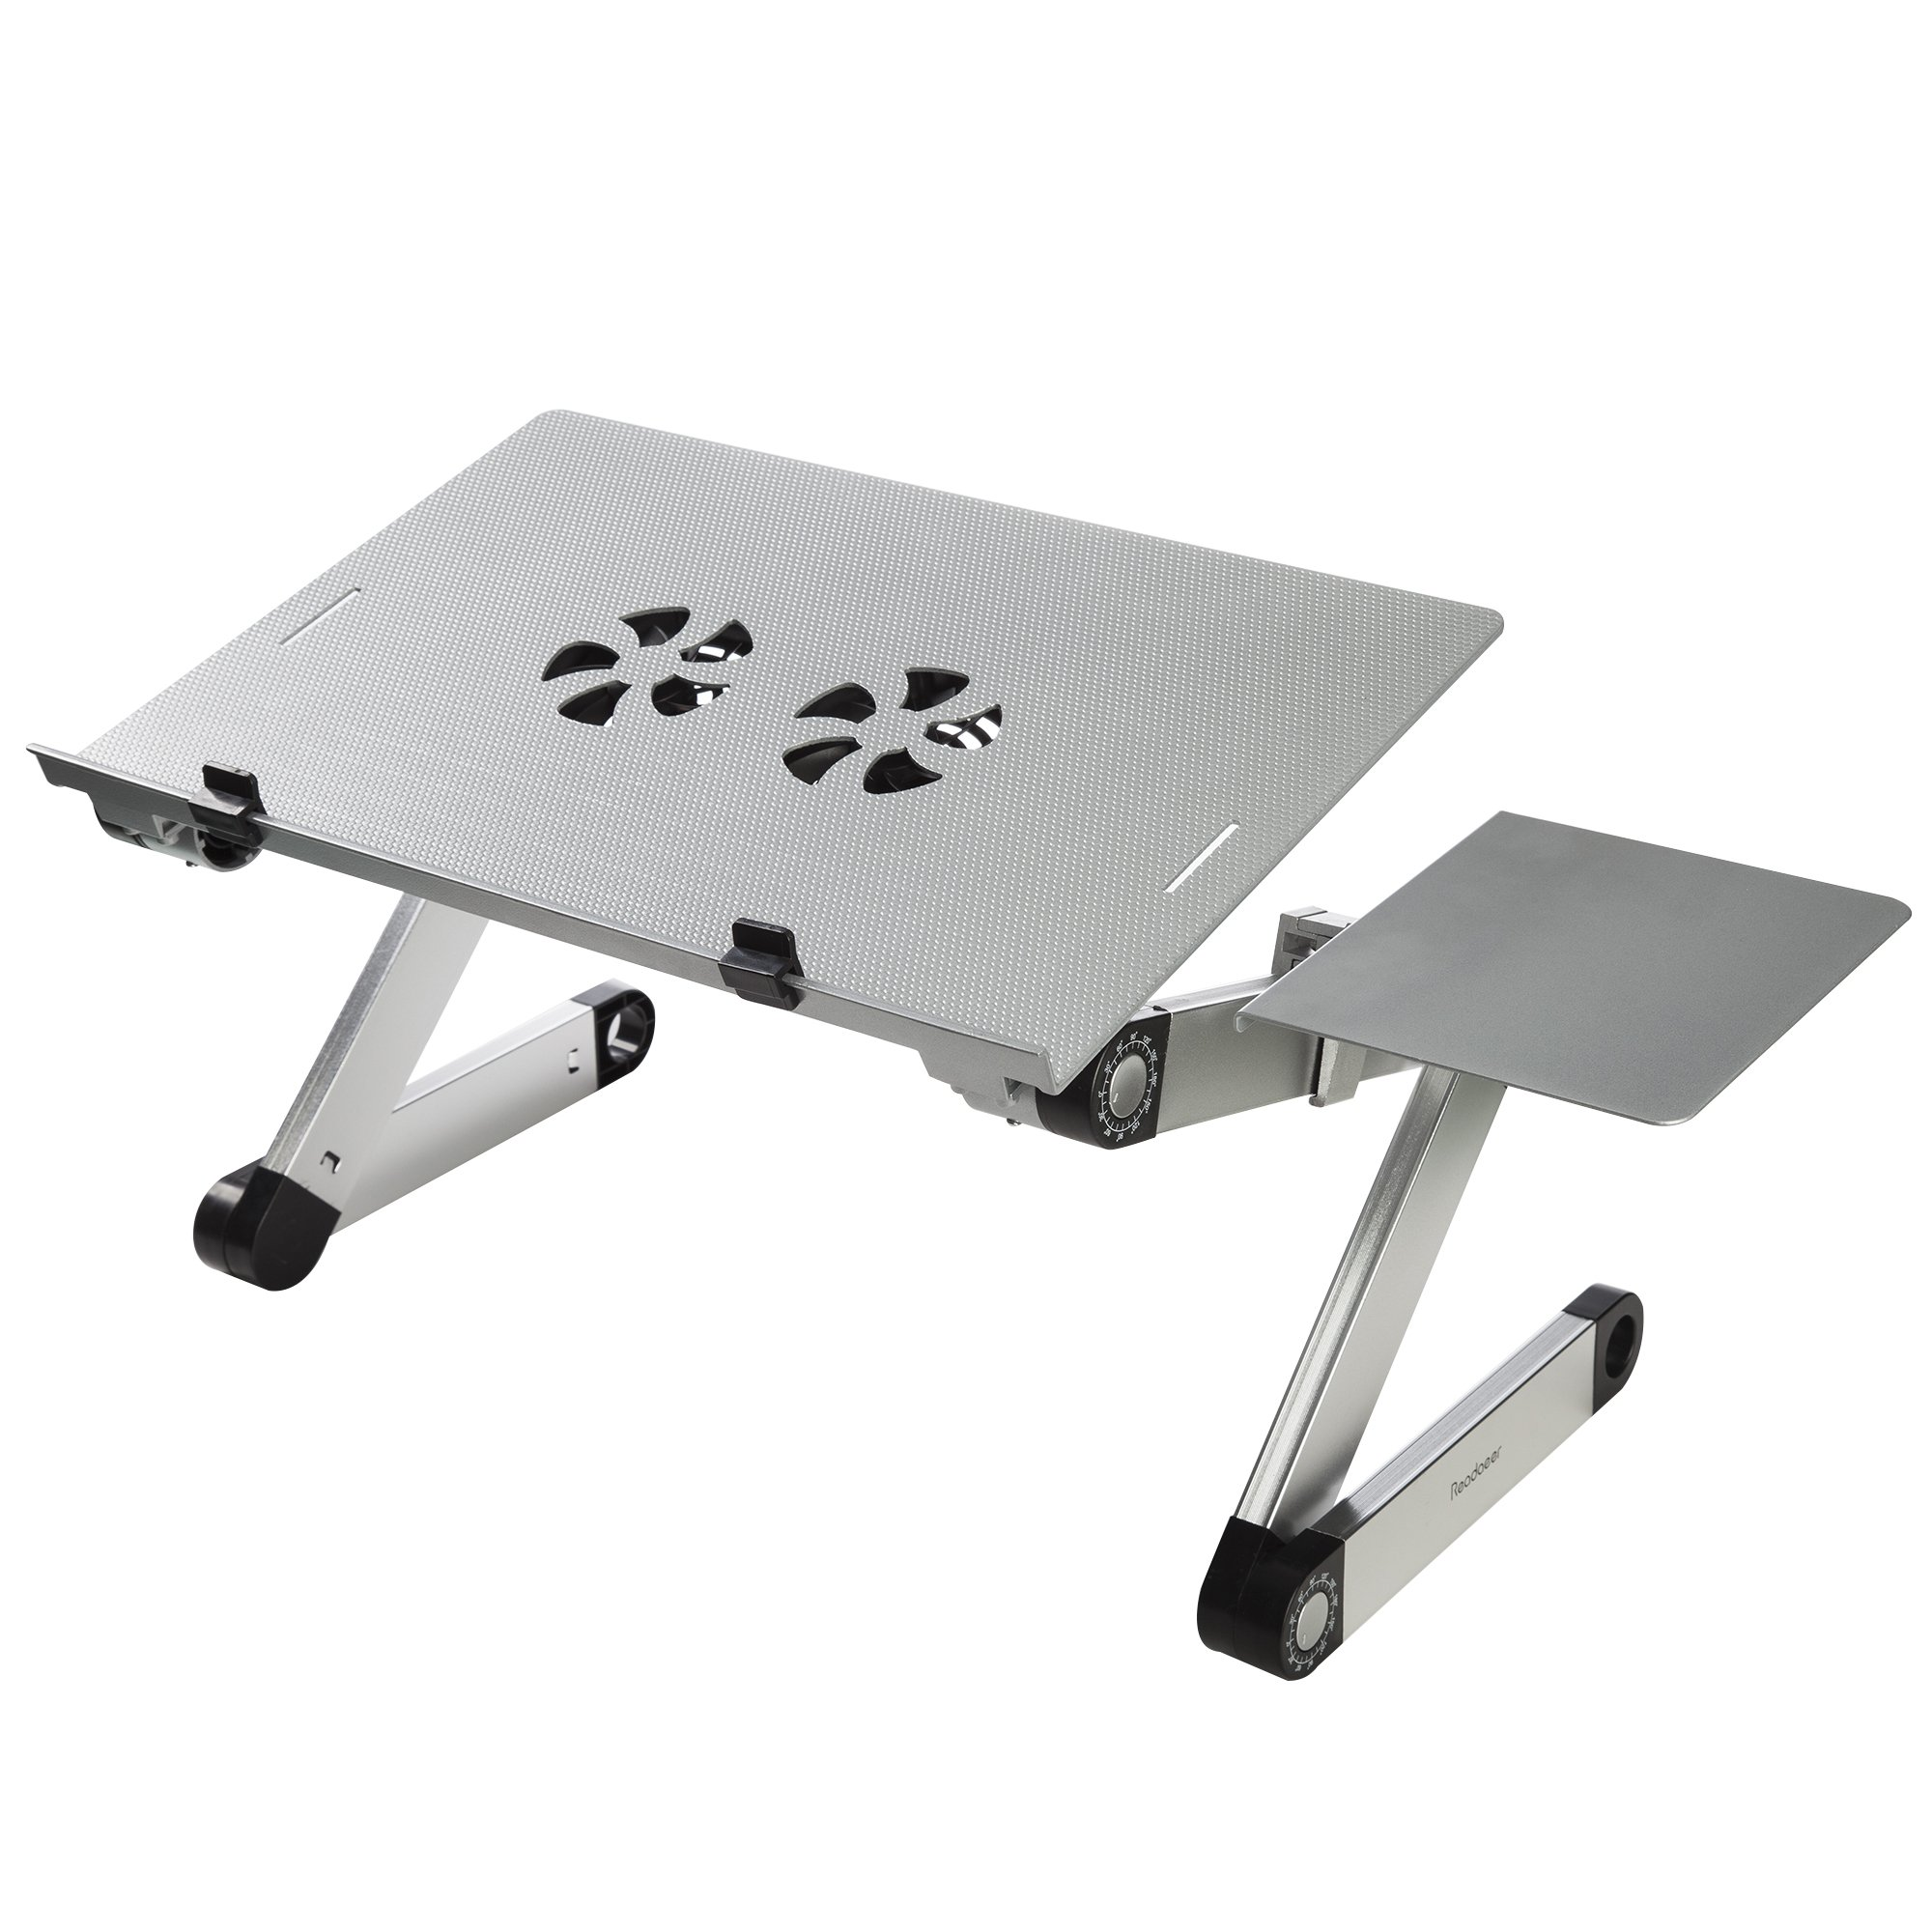 Readaeer Portable Adjustable Foldable Laptop Computer Desk Stand Table with CPU Fans Mouse Pad (Silver)